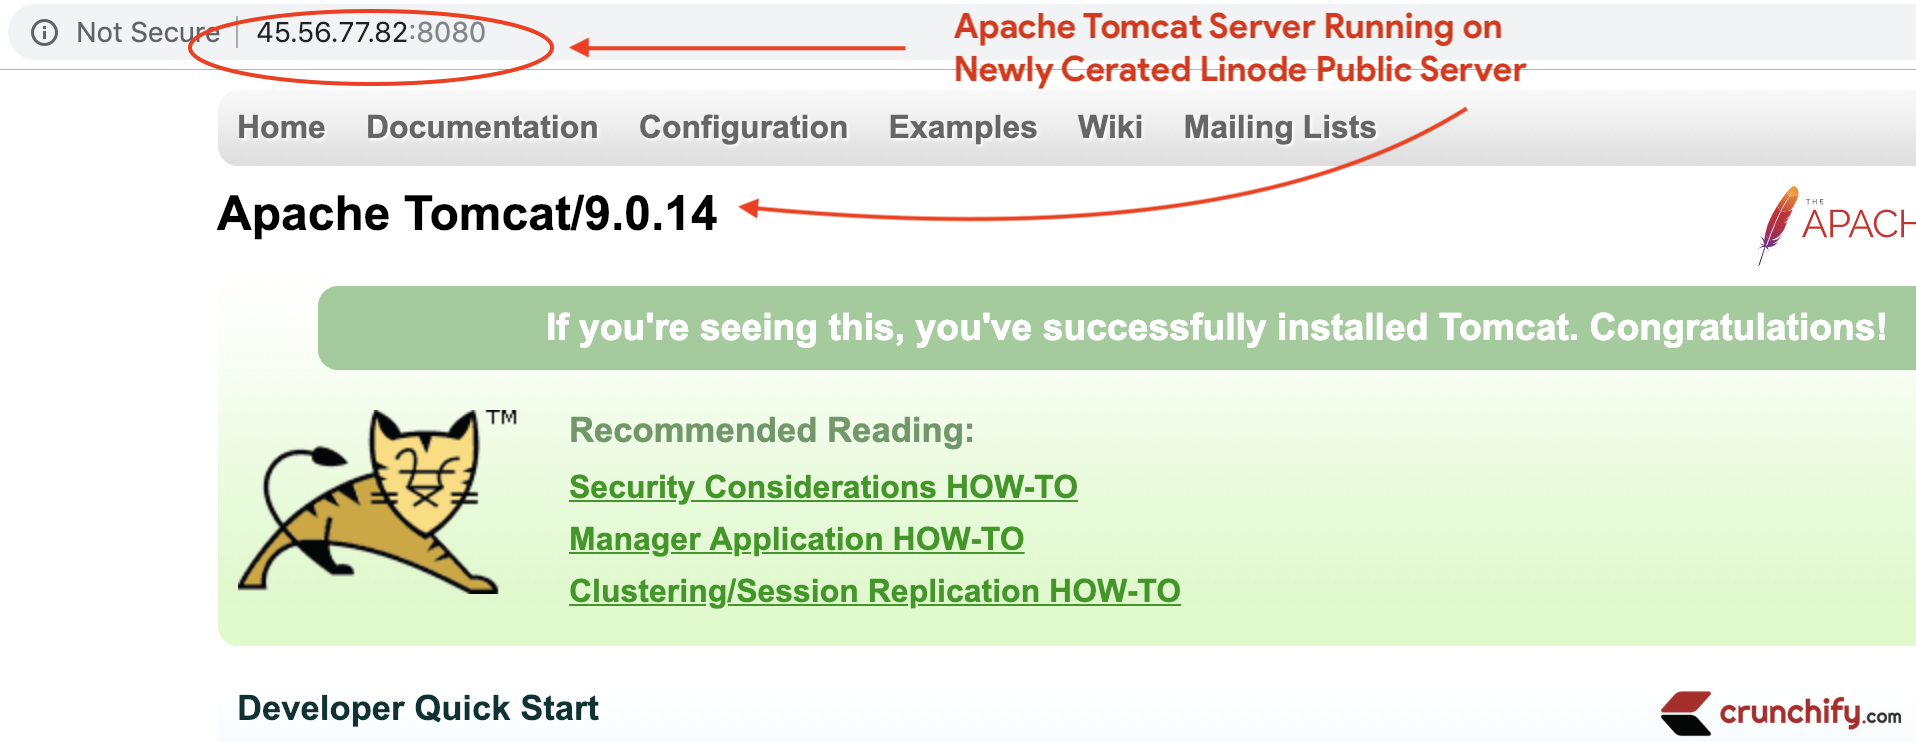 how to install apache tomcat server in linux